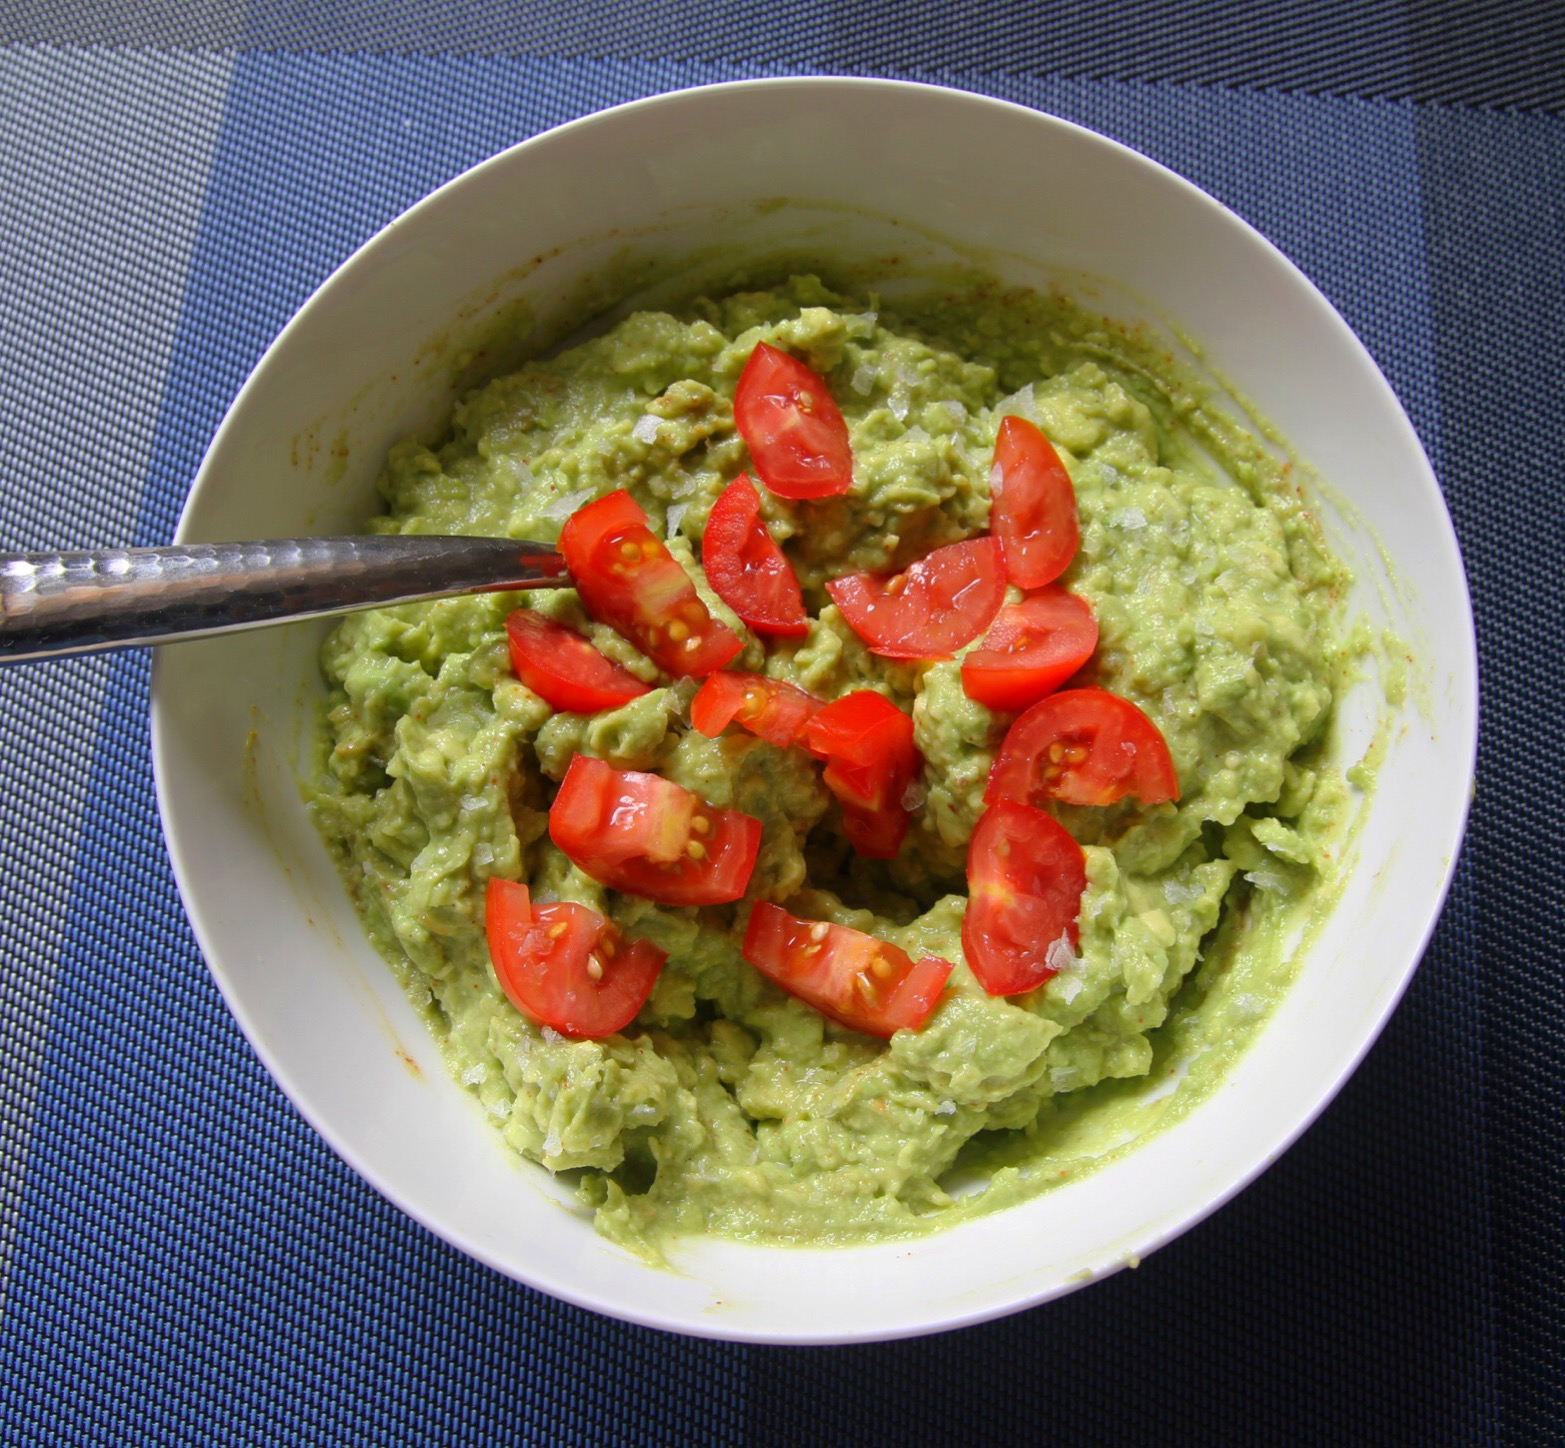 Unrelated, but I just love making homemade guacamole and this photo reminds me that I have 3 ripe avocados ready for me in the fridge. Snack time!